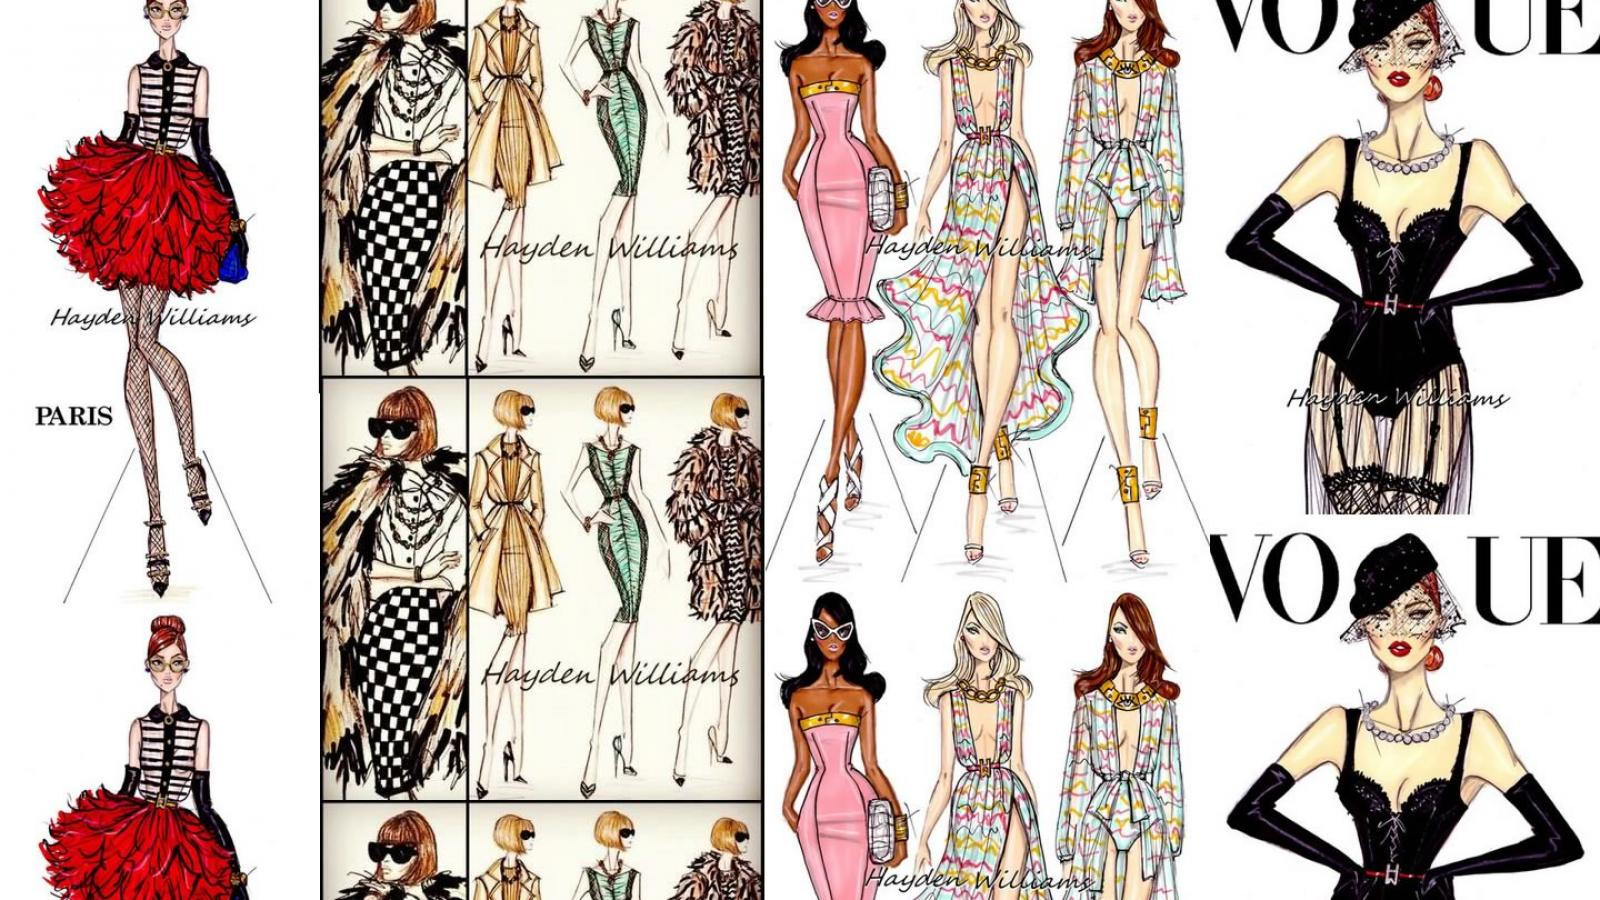 Beautiful Fashion Illustrations by Hayden Williams